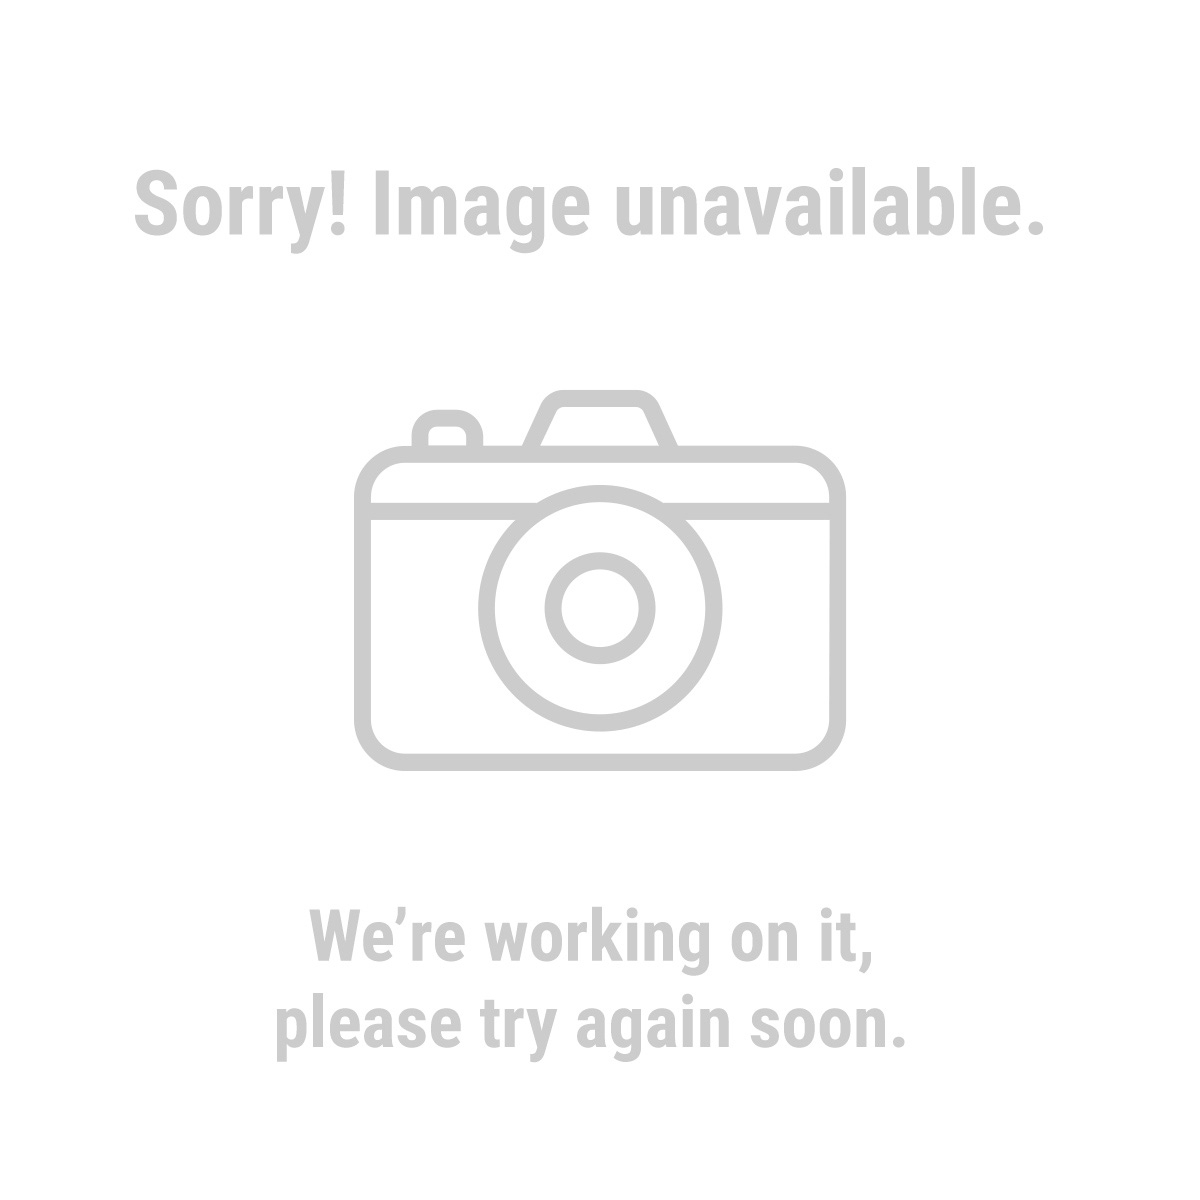 Badland Winches 61672 1500 lb. Capacity 120 Volt AC Electric Winch